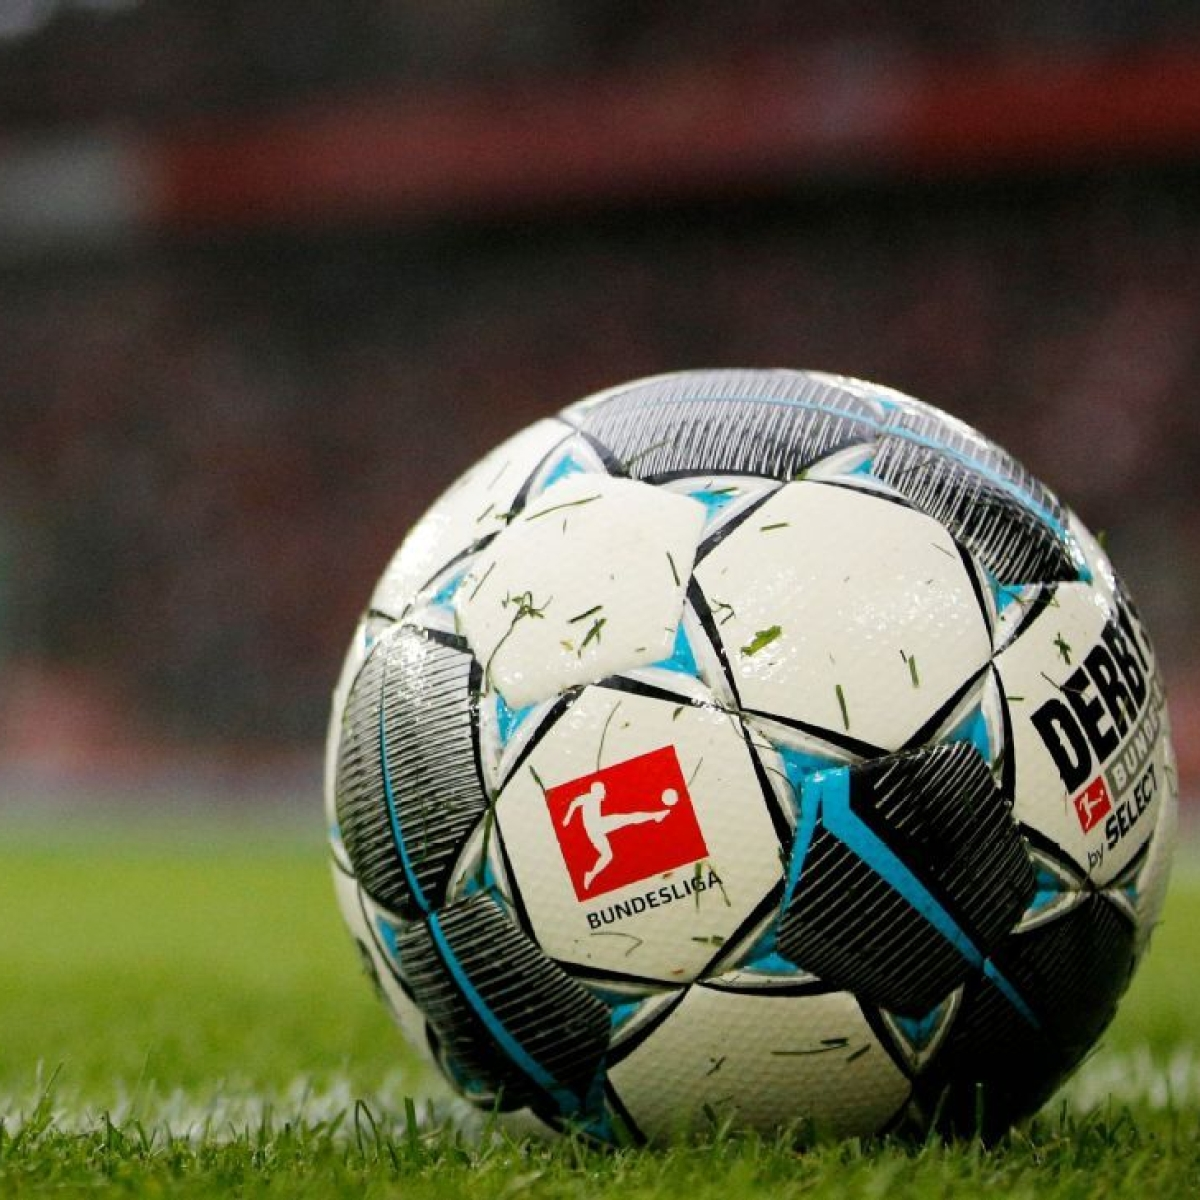 Germany's Bundesliga to resume in second-half of May behind closed doors